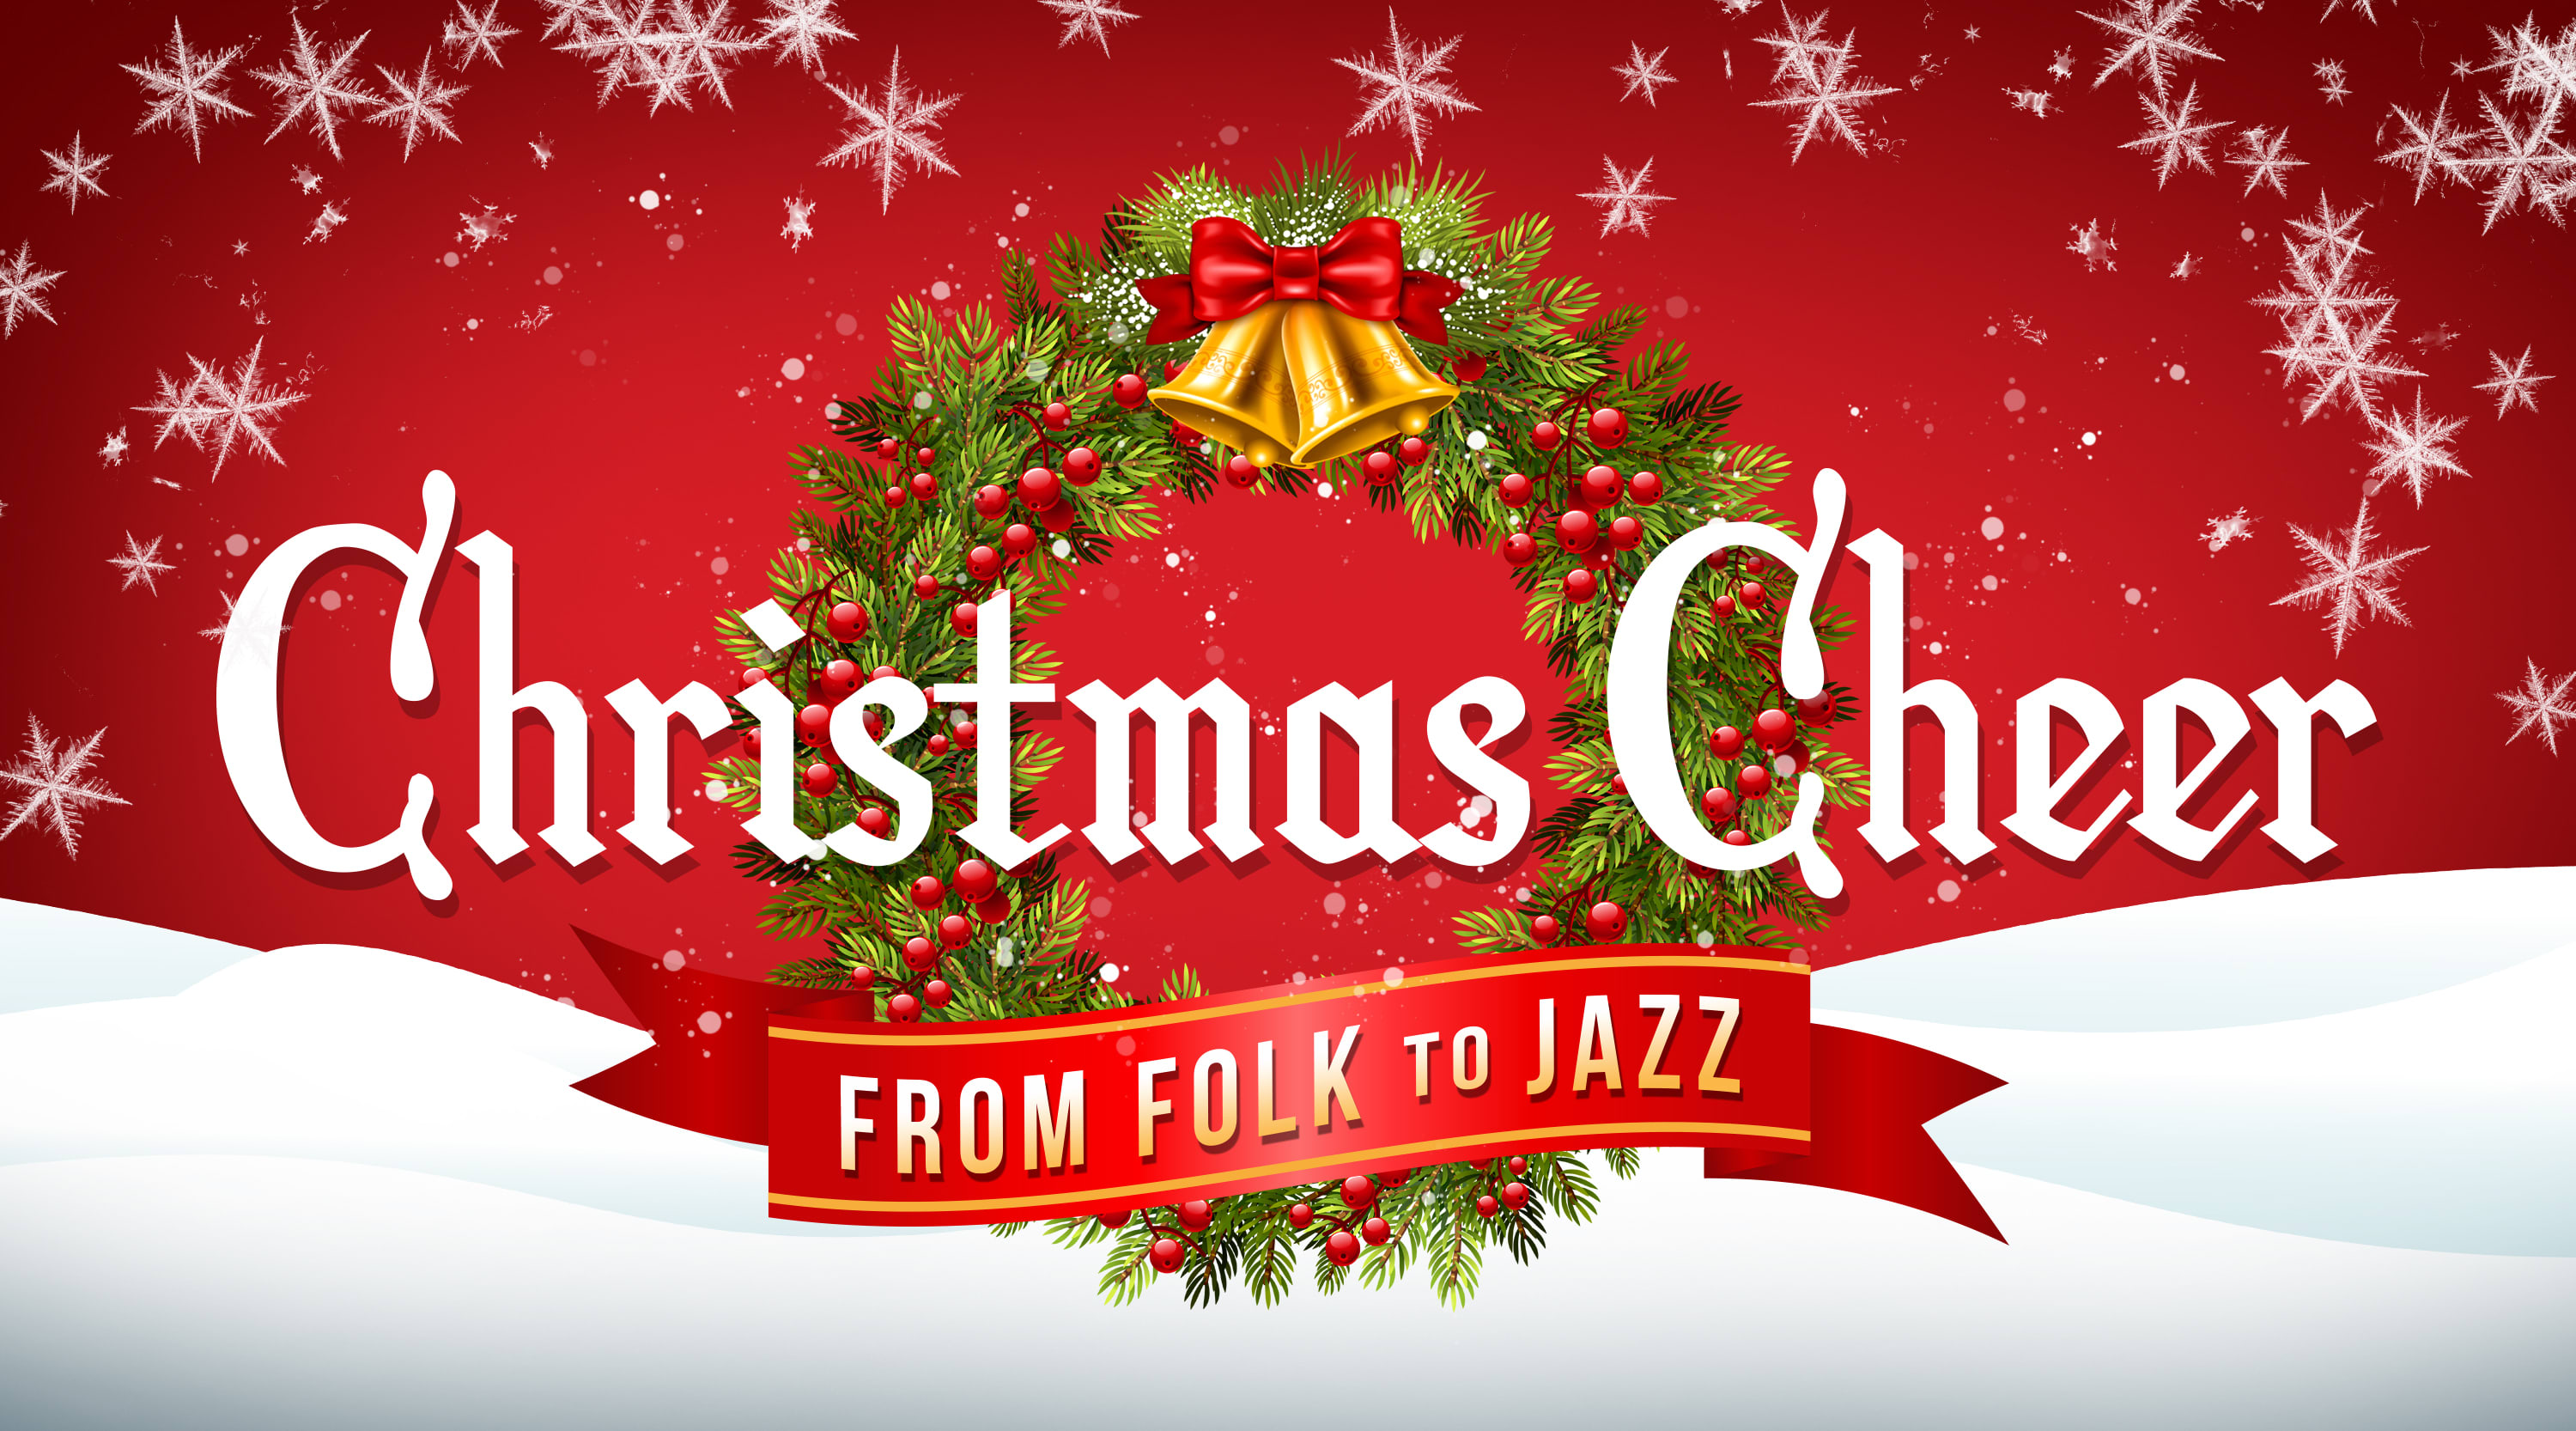 Christmas Cheer: From Folk to Jazz